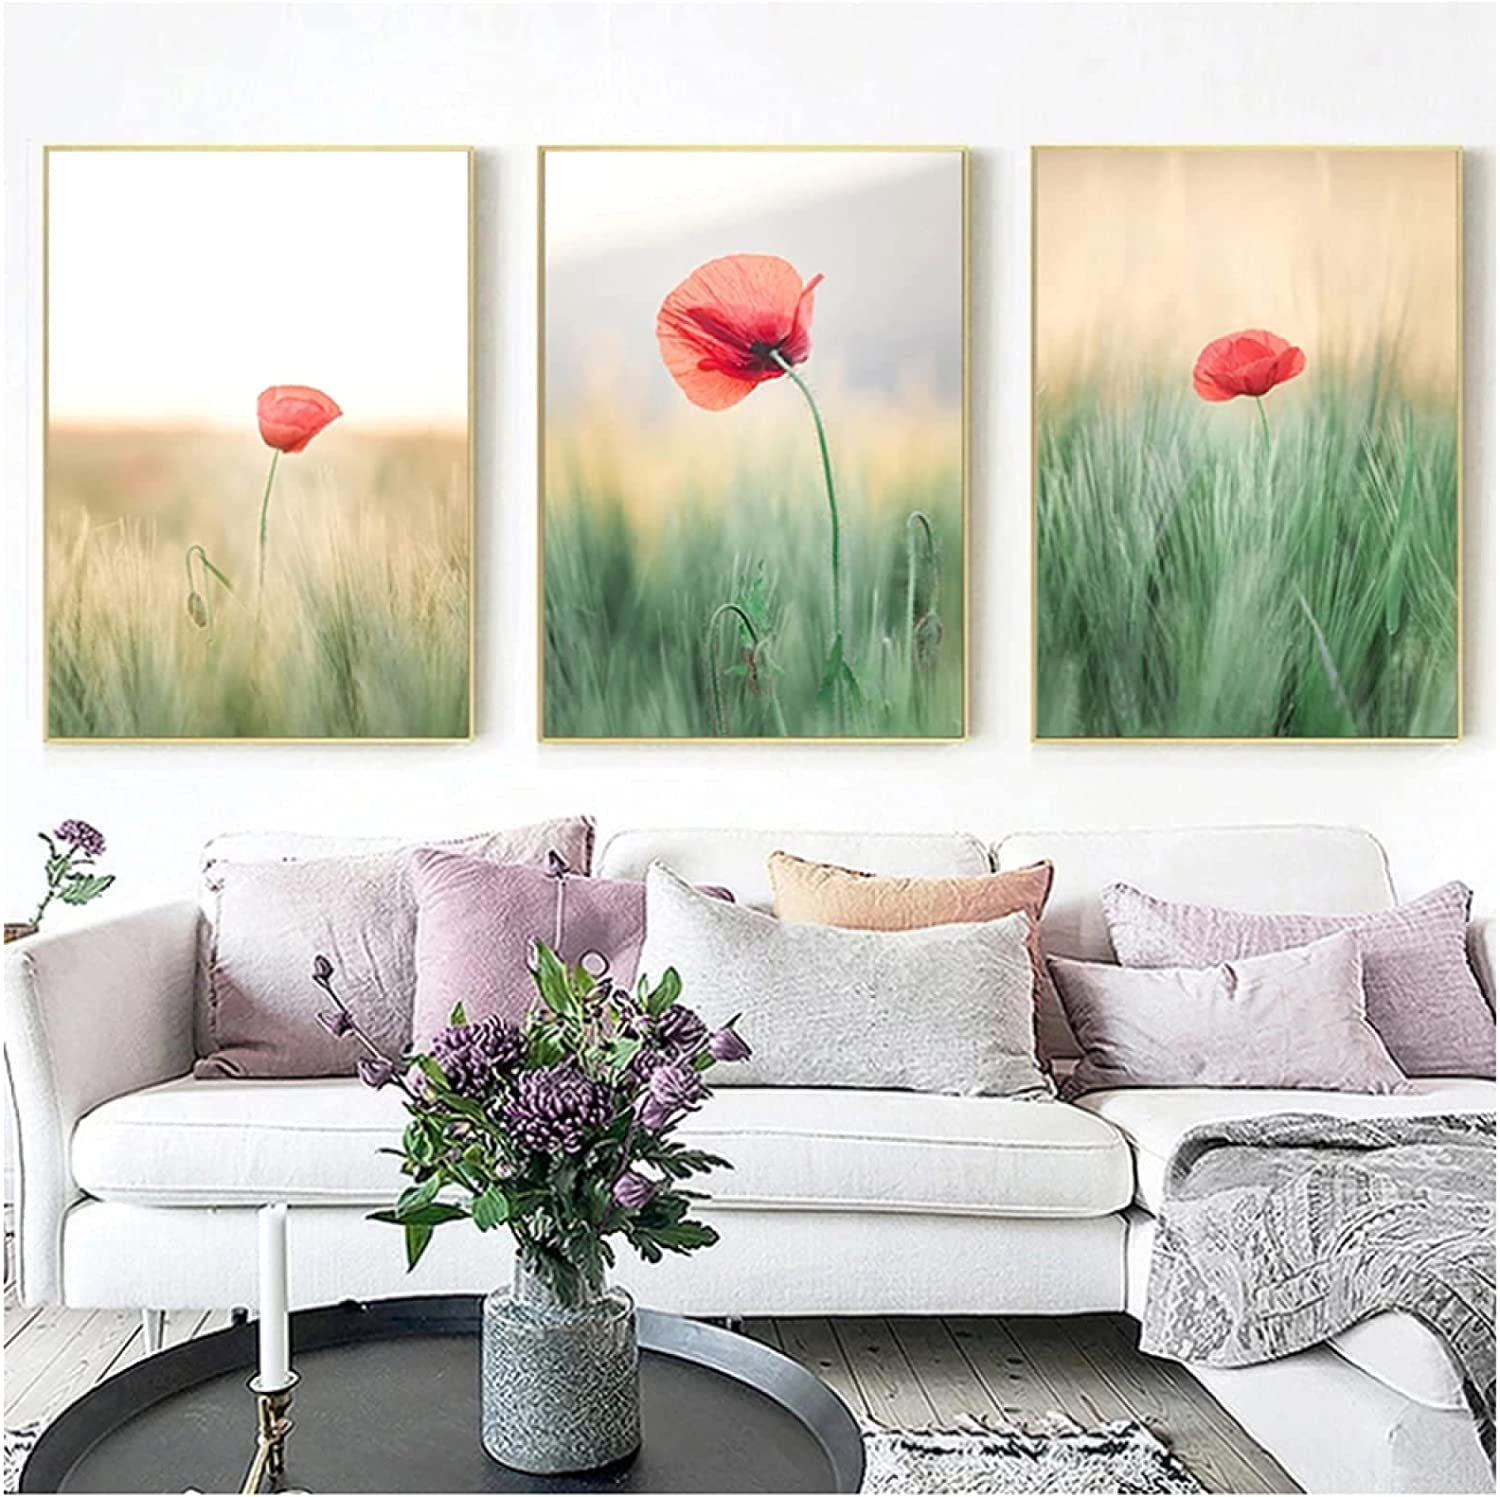 Grassland Blooming Red Flowers List price Natural Landscape Art Wall Max 53% OFF poster